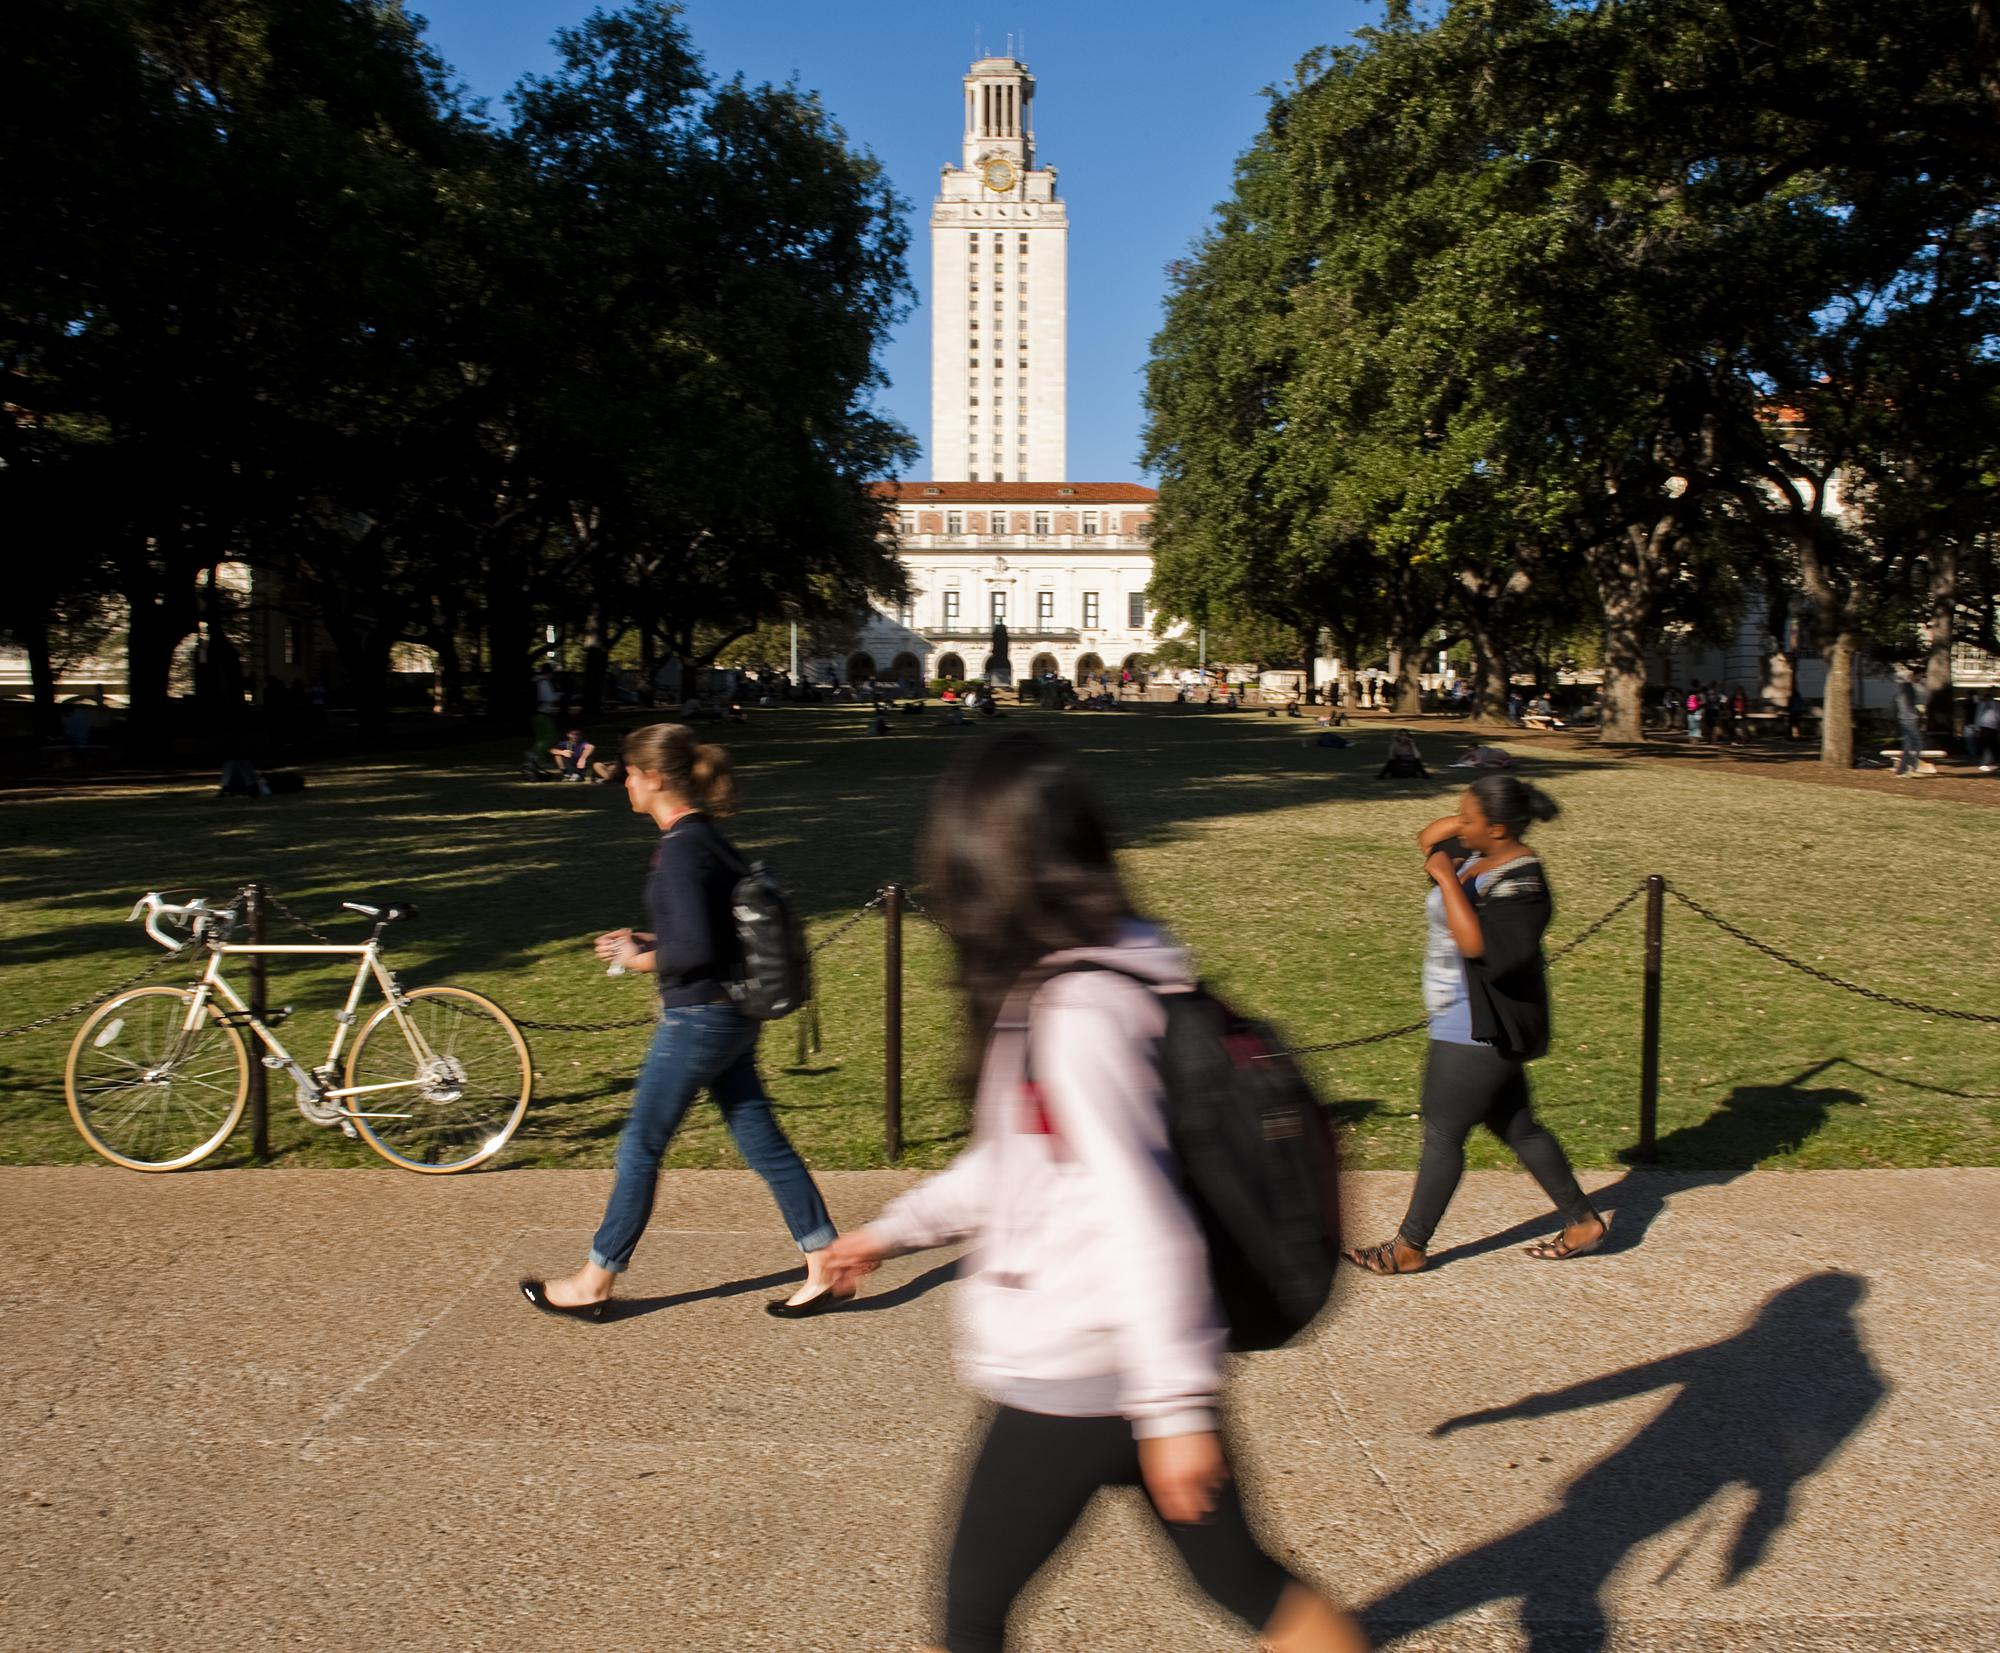 UT System announces endowment that will cover tuition fees, for more than 8,000 students in 2020